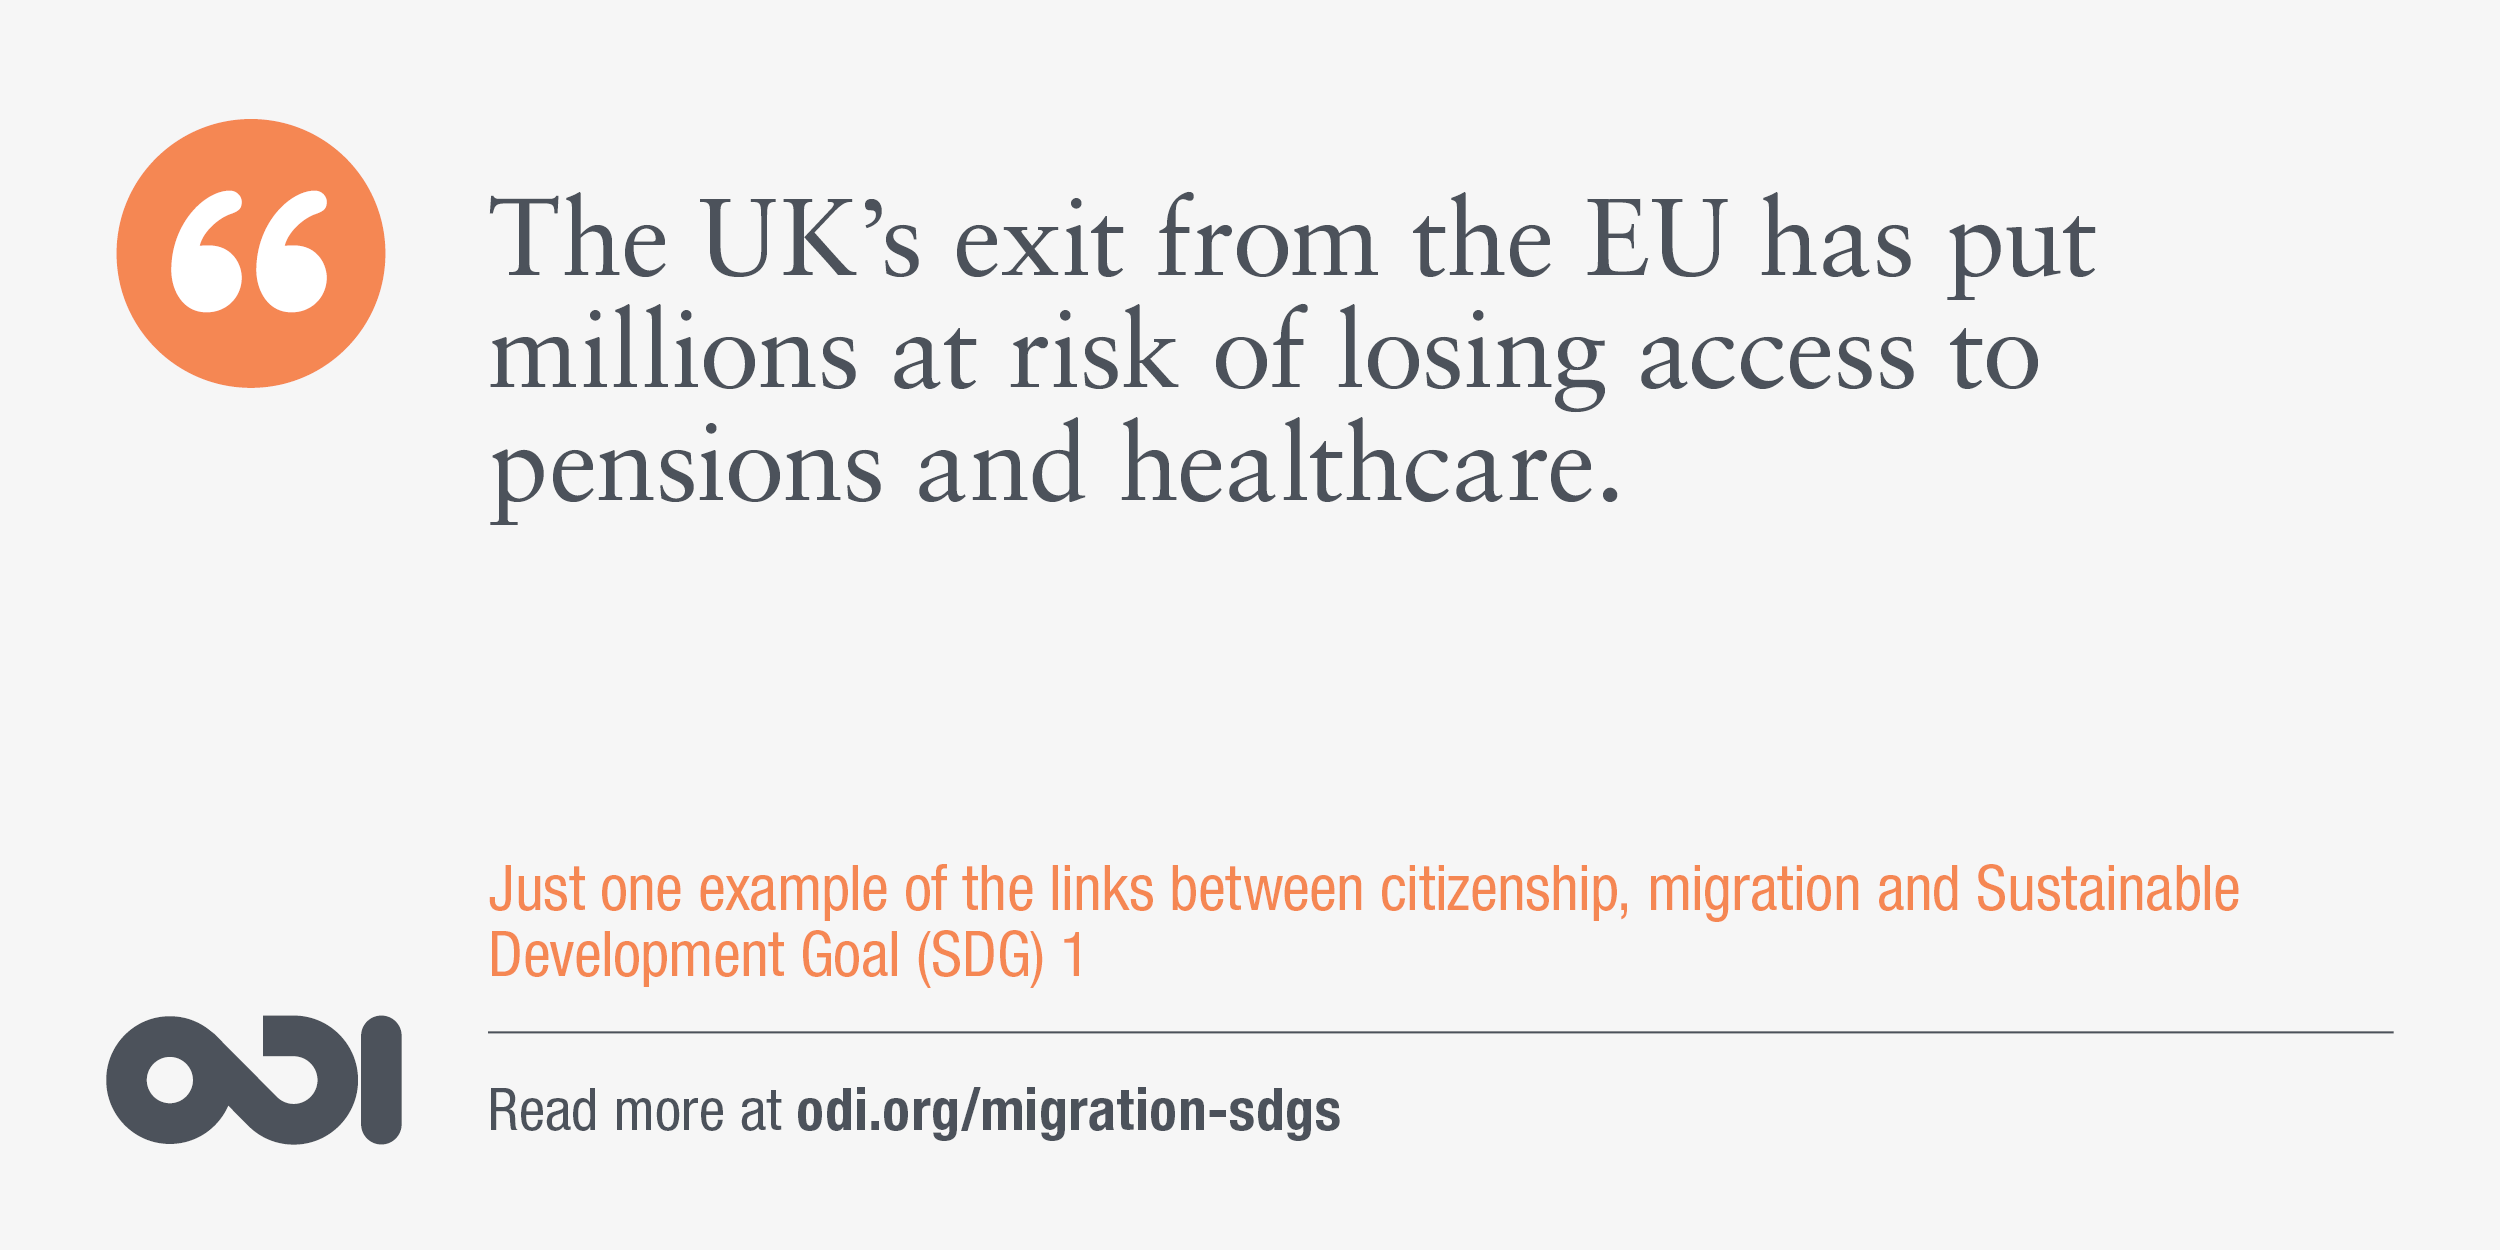 The links between citizenship, migration and SDG 1.